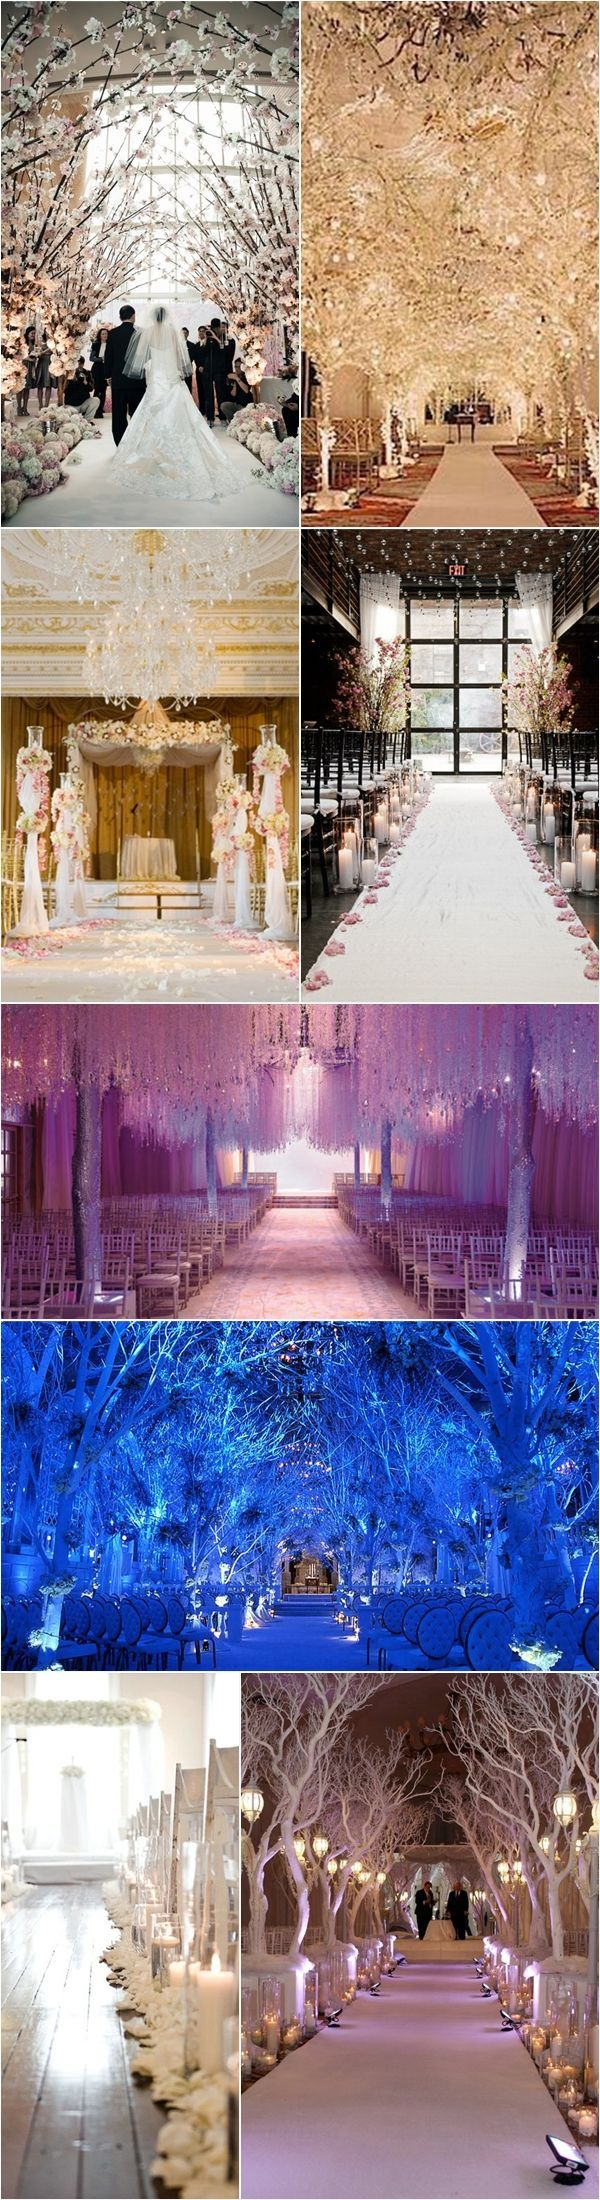 40 Great Wedding Aisle Ideas for Your Big Day Wedding aisle decorations Aisle runner wedding